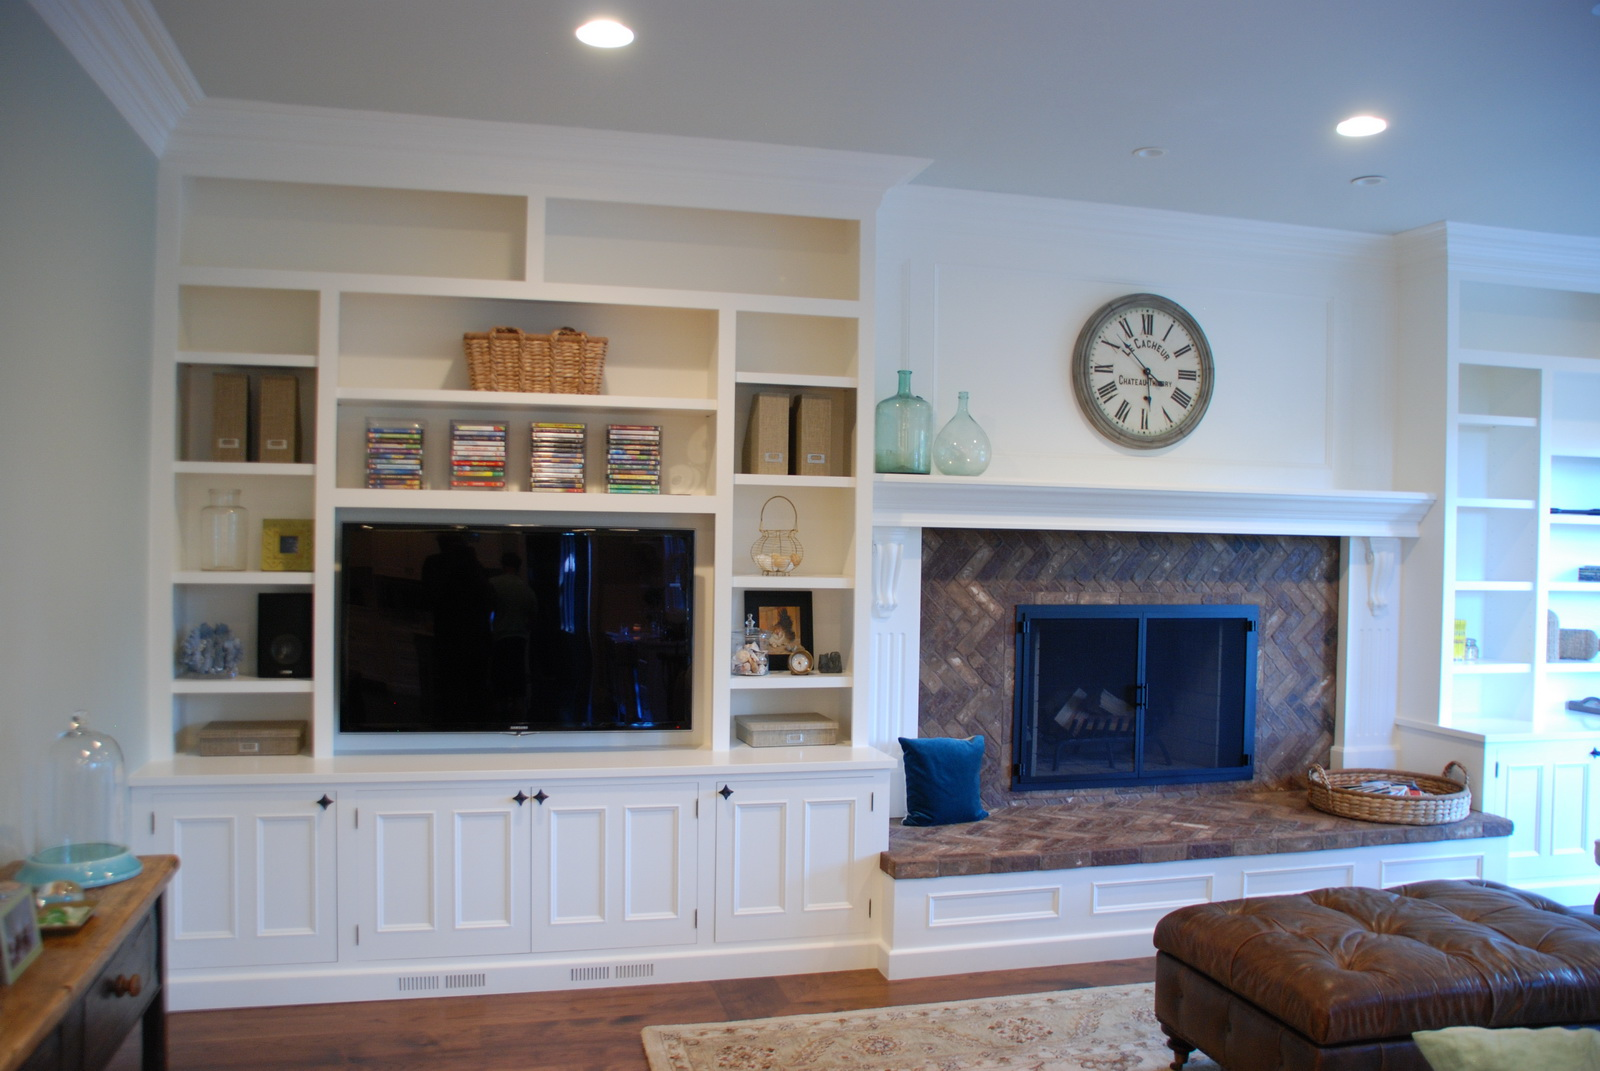 Built In Stereo And Tv Cabinet Next To Fireplace